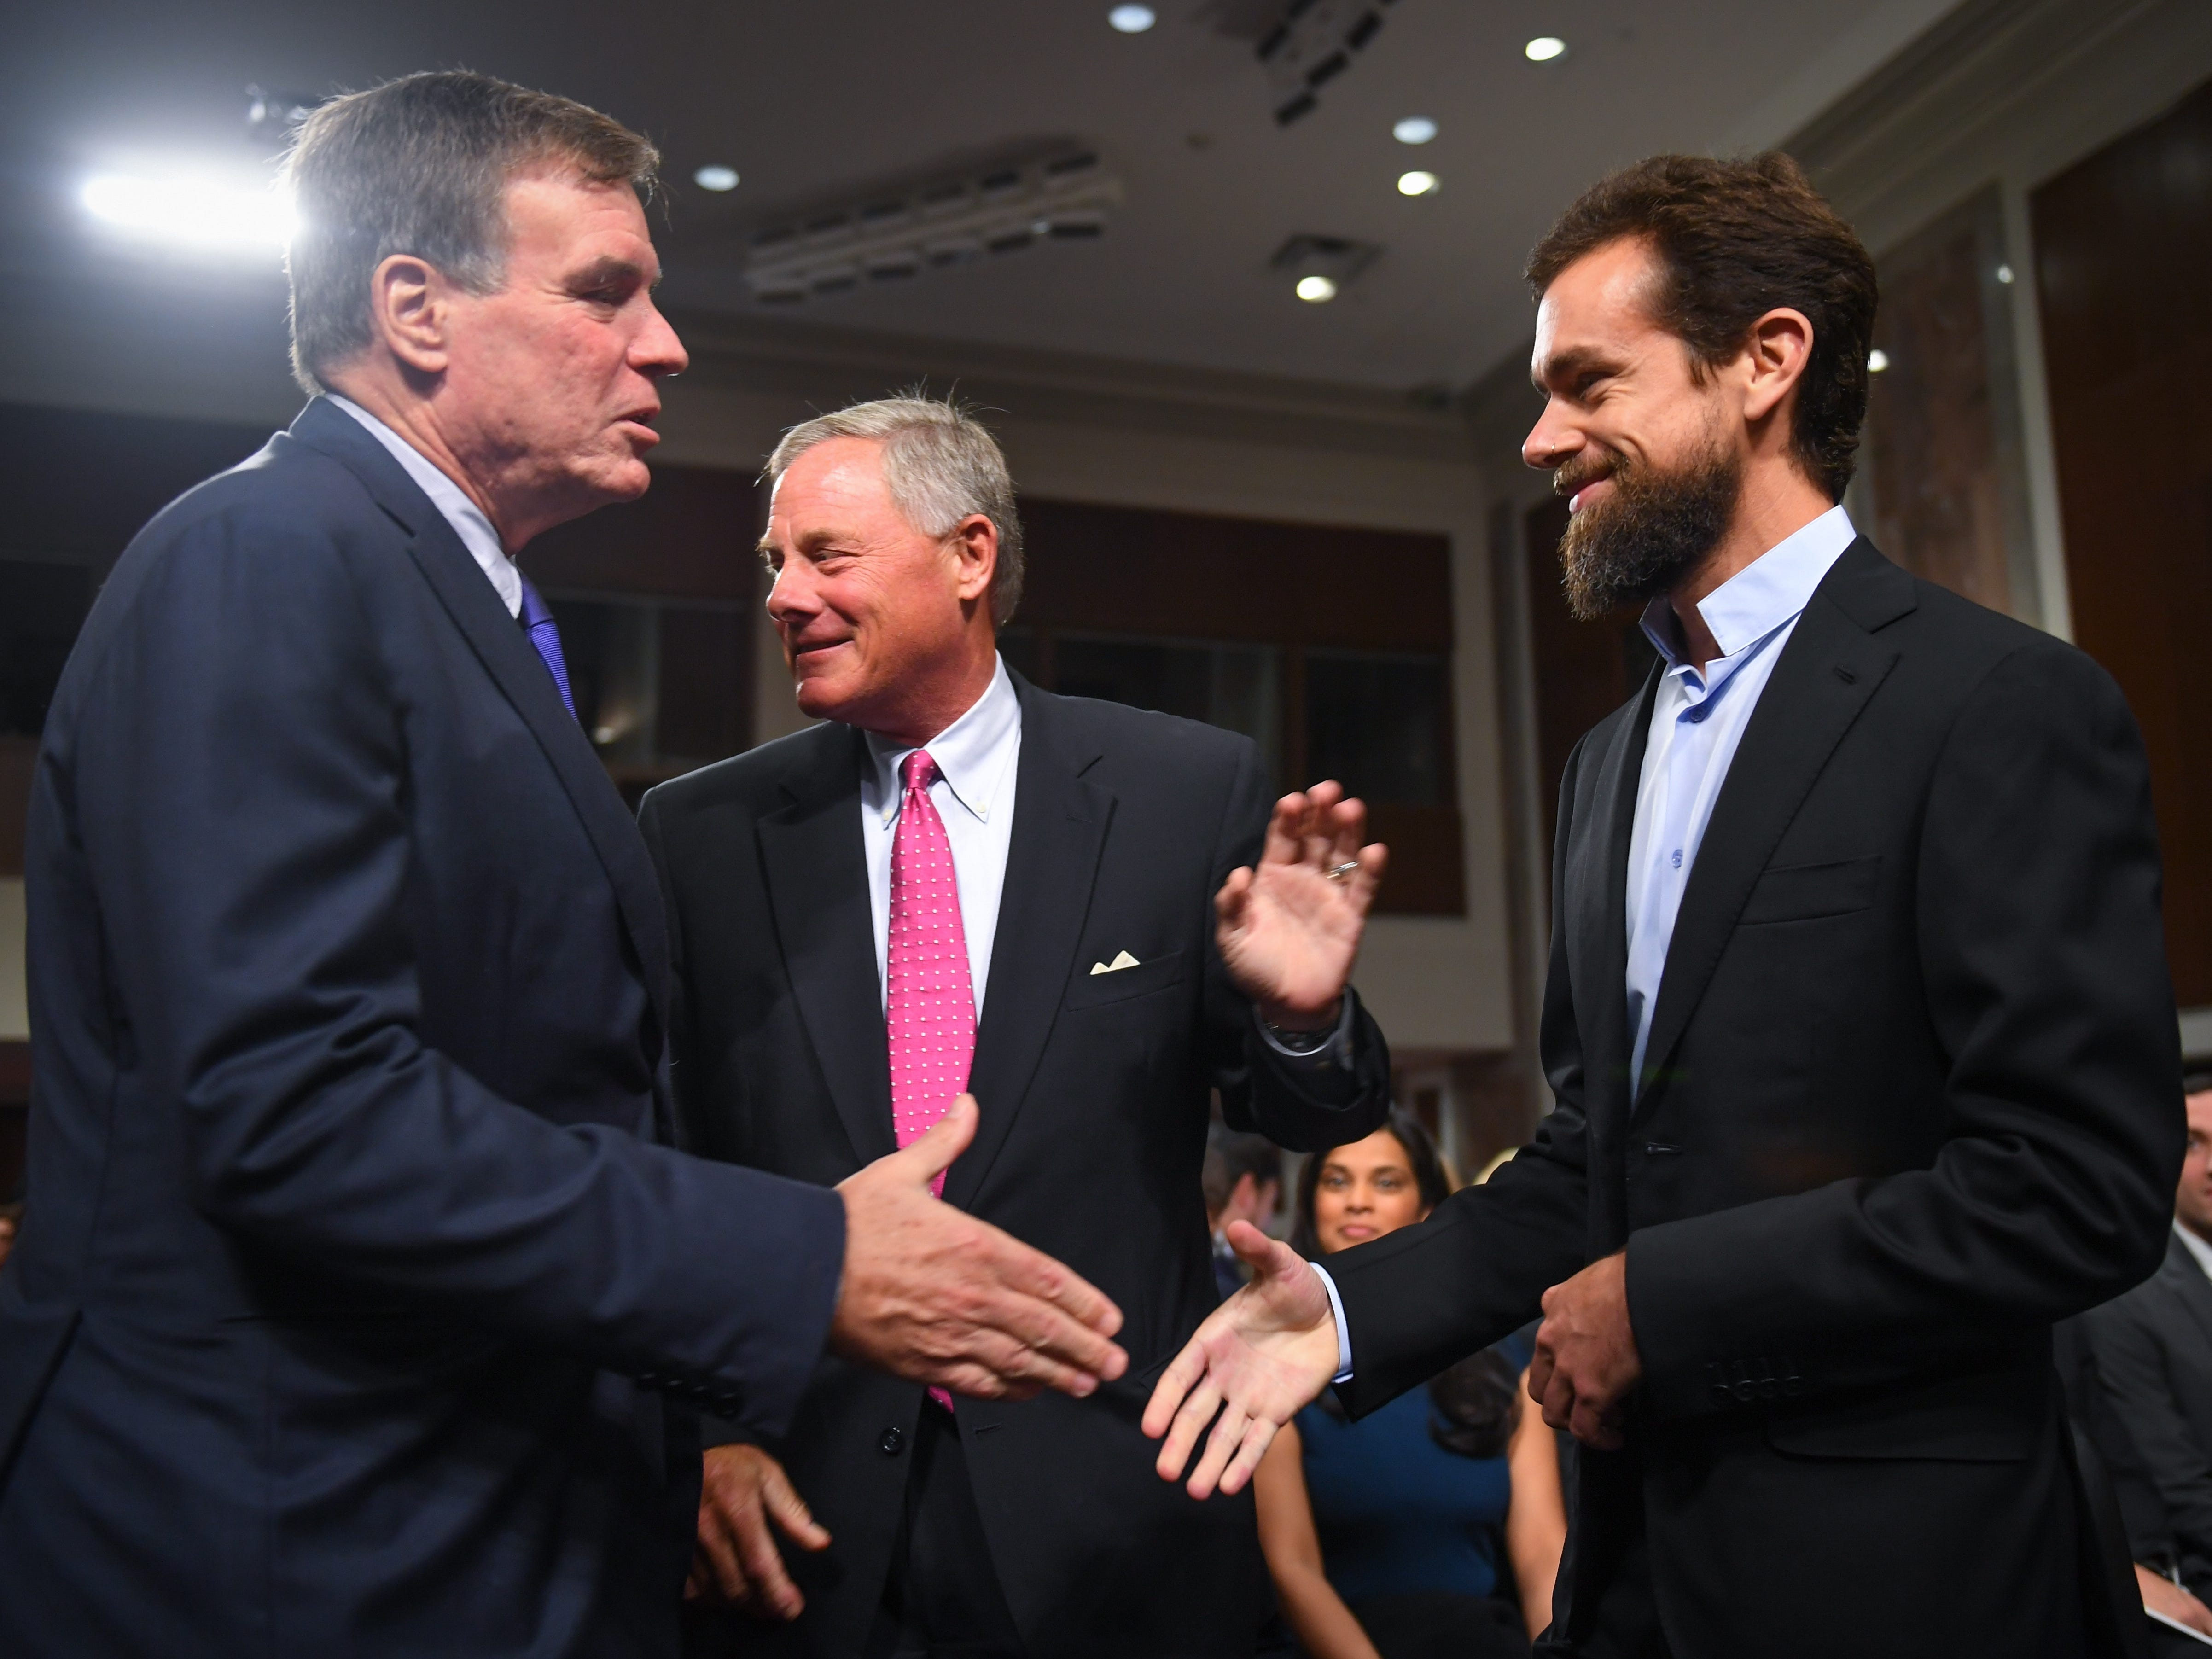 9/5/18 9:32:10 AM -- Washington, DC, U.S.A  -- Jack Dorsey, chief executive officer of Twitter Inc., arrives and meets Senators Mark Warner, left, and Richard Burr before he would testify before the Senate Select Committee on Intelligence during a hearing on Foreign Influence Operations' Use of Social Media Platforms on Sept. 5, 2018 in Washington.  --    Photo by Jack Gruber, USA TODAY Staff ORG XMIT:  JG 137441 Social Media Hea 9/5/ (Via OlyDrop)